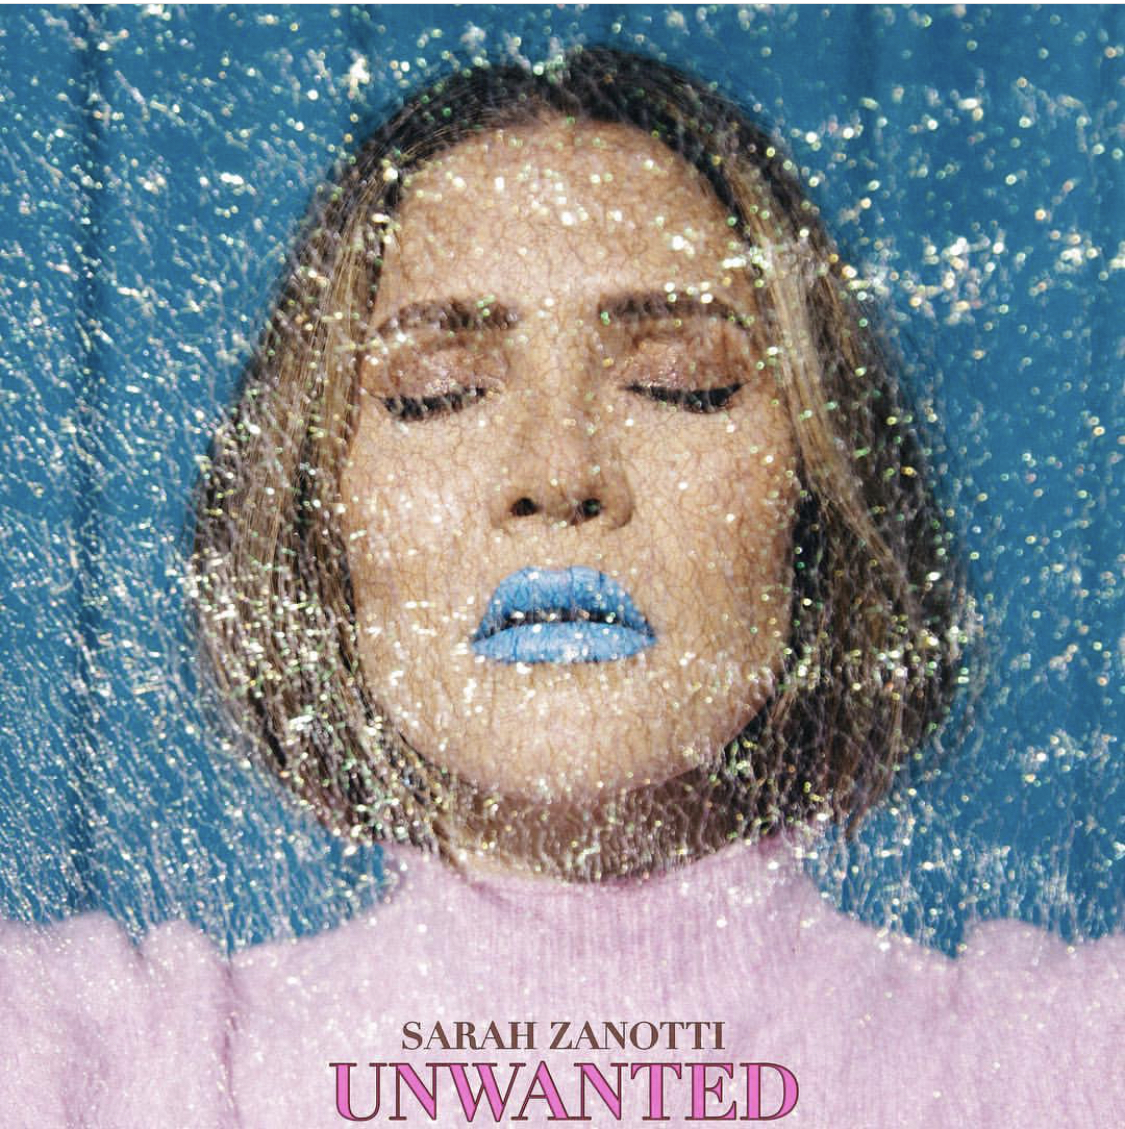 Sarah's new song Unwanted is out!!